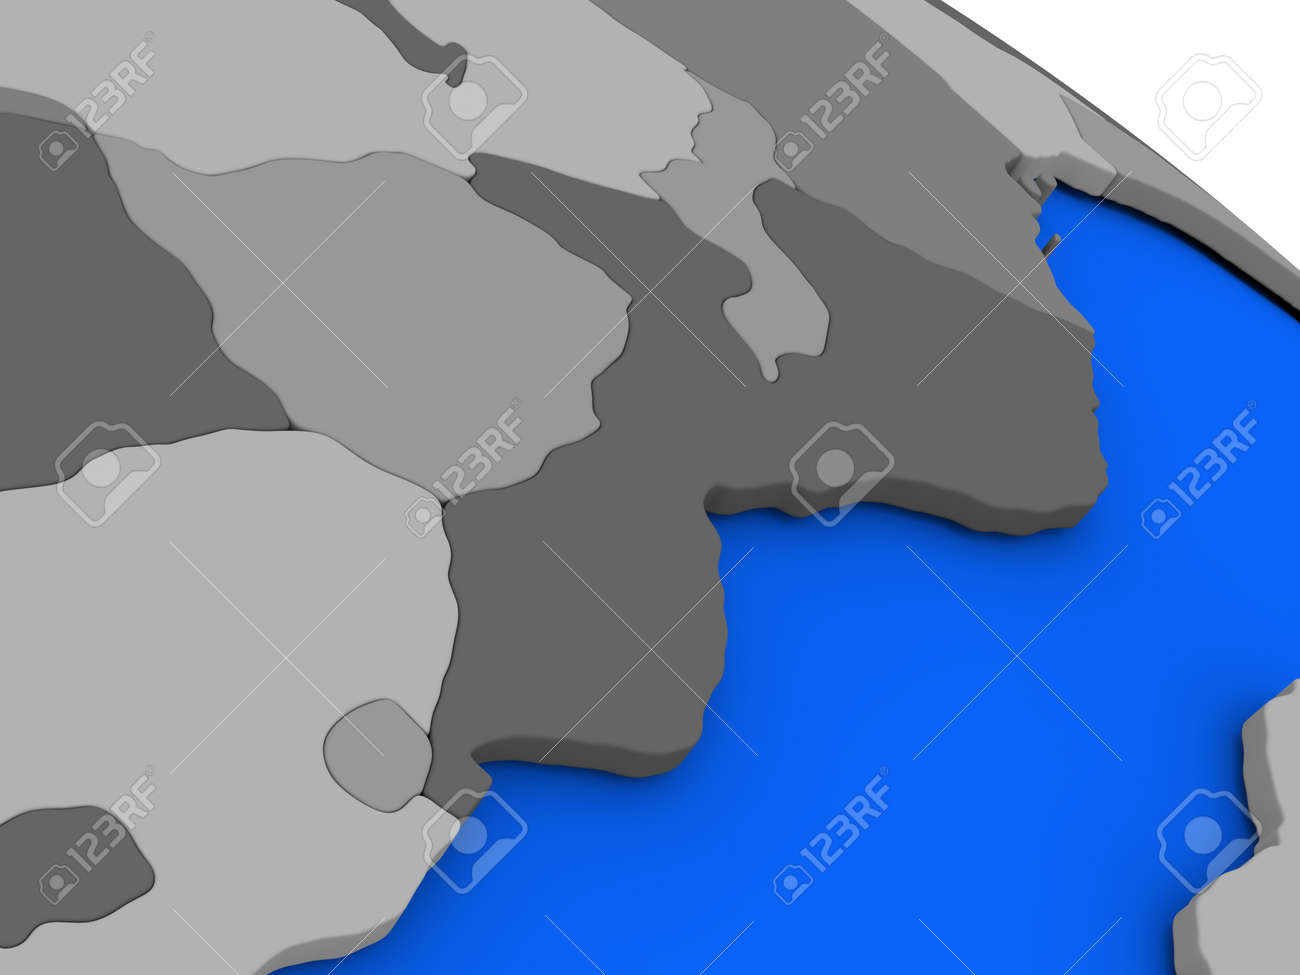 Map of mozambique and zimbabwe on 3d model of earth with countries illustration map of mozambique and zimbabwe on 3d model of earth with countries in various shades of grey and blue oceans 3d illustration gumiabroncs Gallery